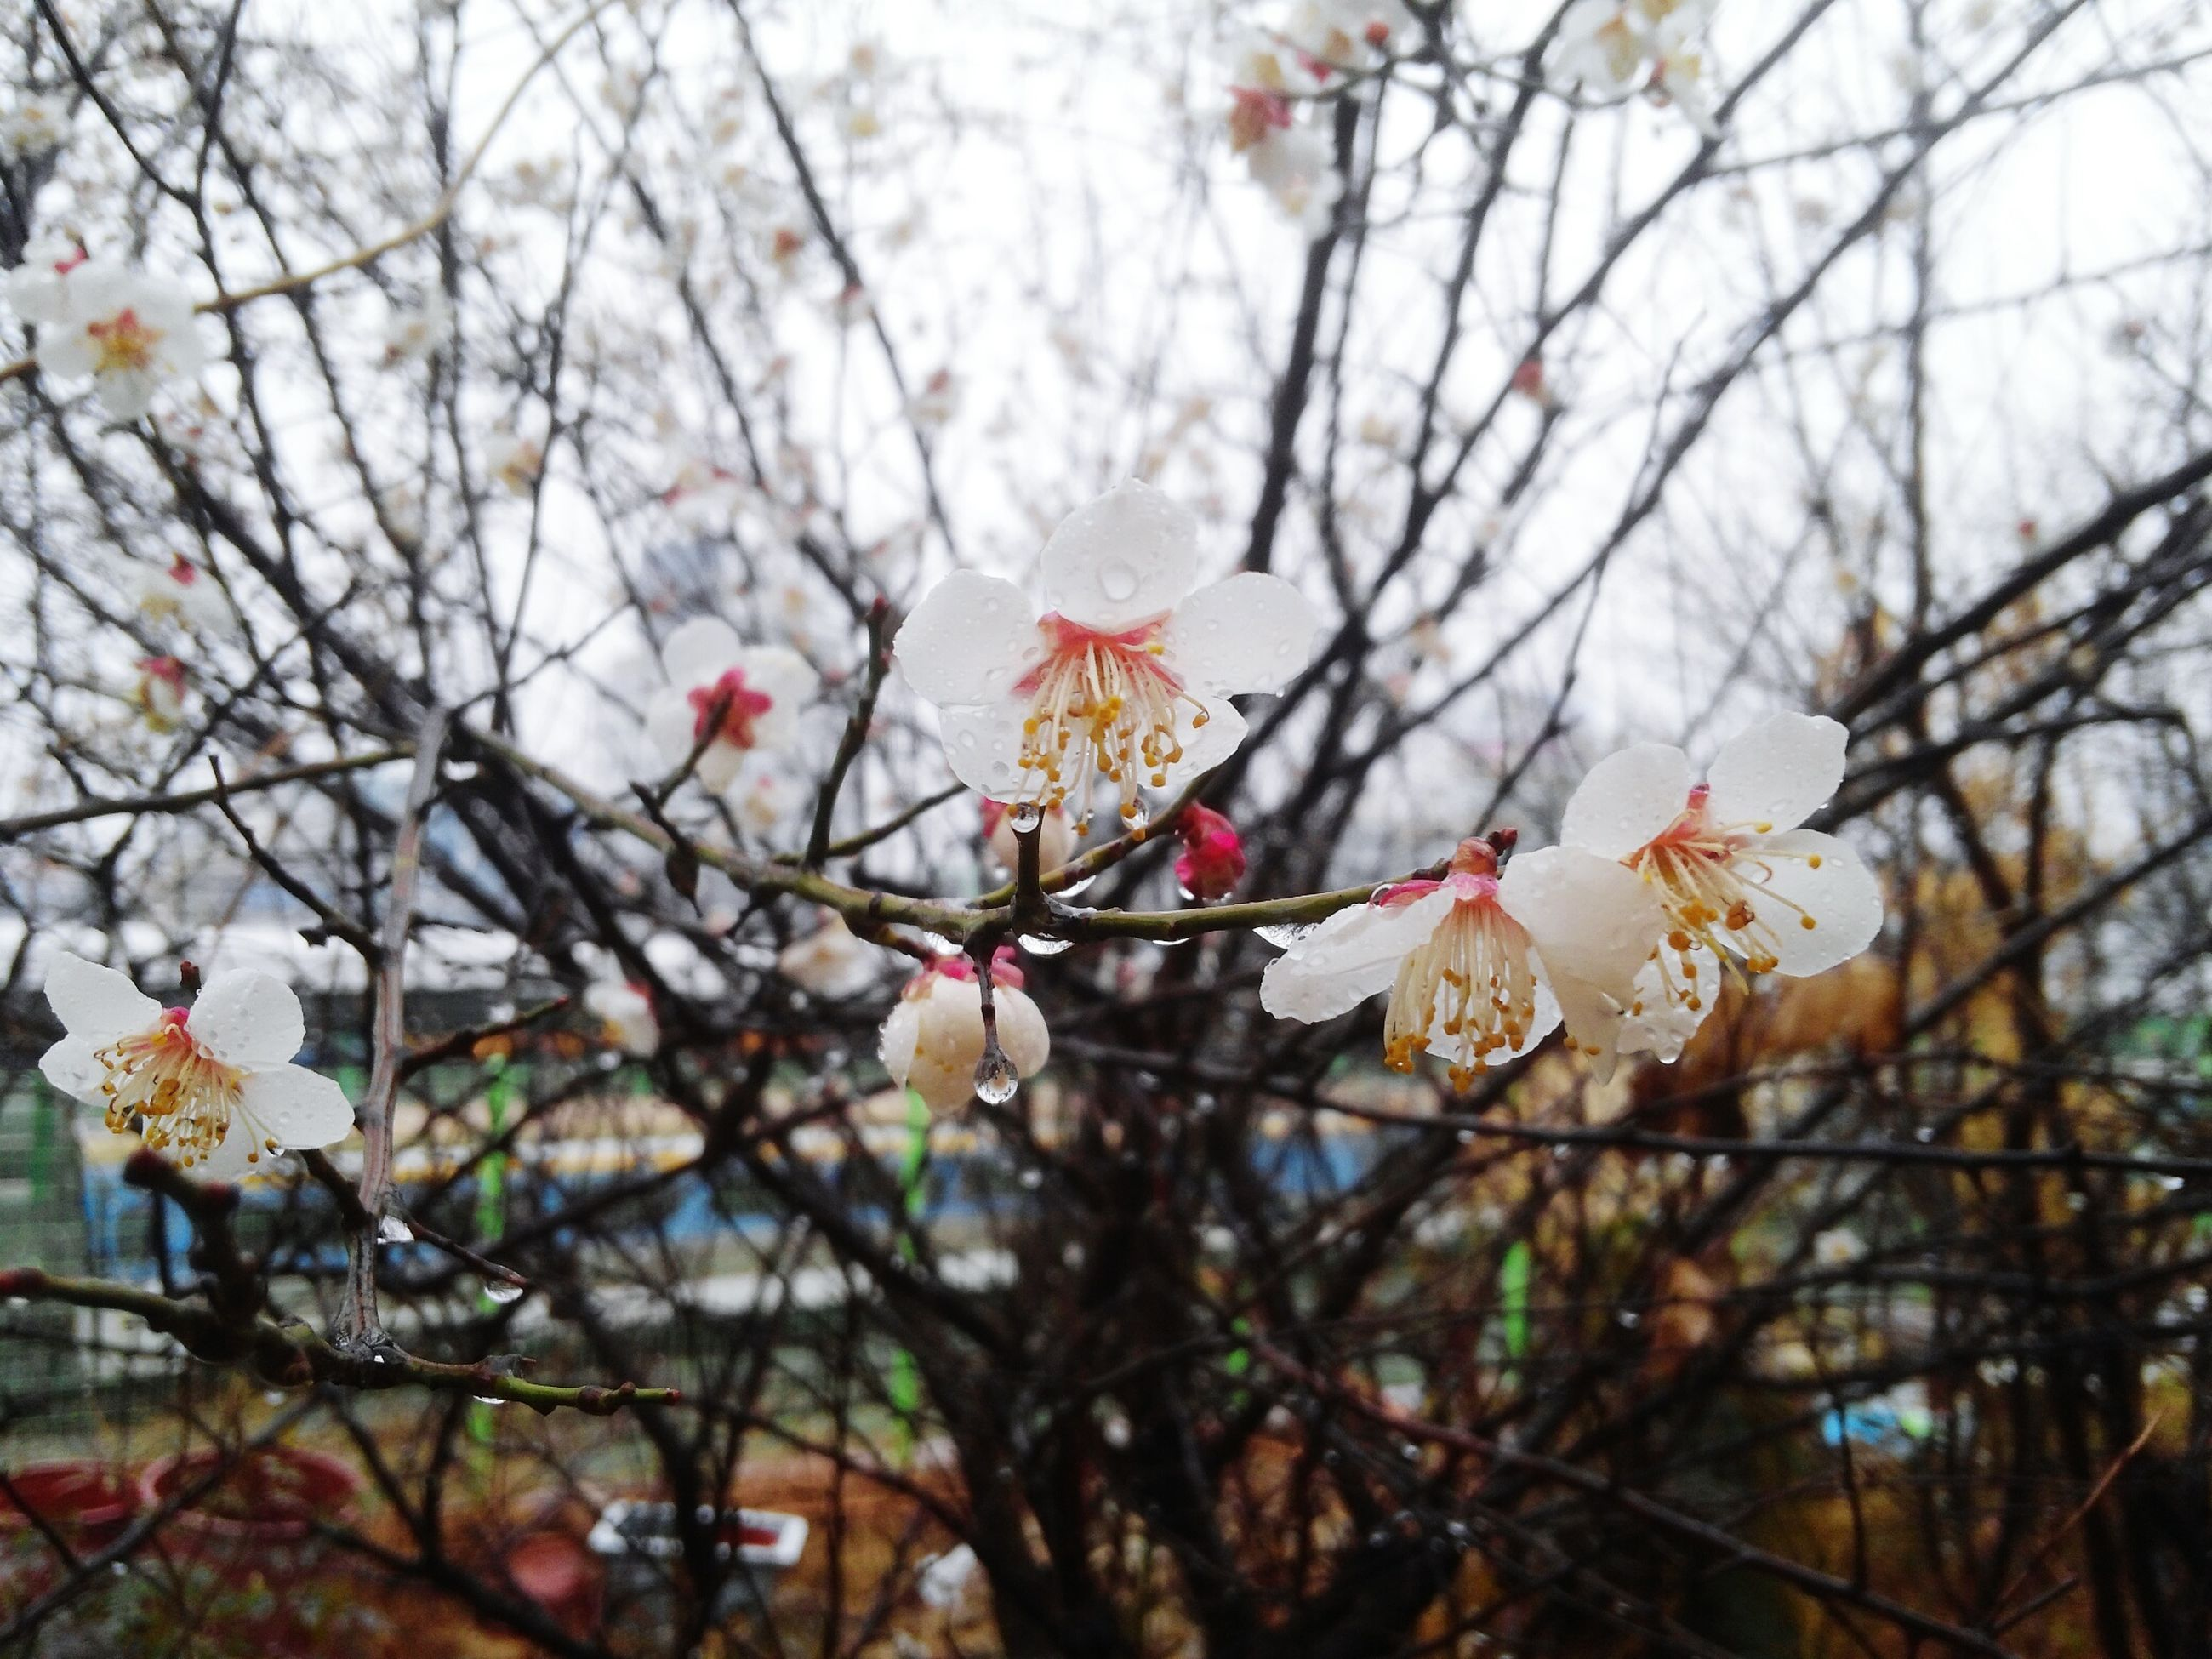 branch, flower, tree, low angle view, white color, cherry blossom, fragility, freshness, blossom, growth, twig, cherry tree, nature, focus on foreground, fruit tree, petal, beauty in nature, close-up, apple tree, apple blossom